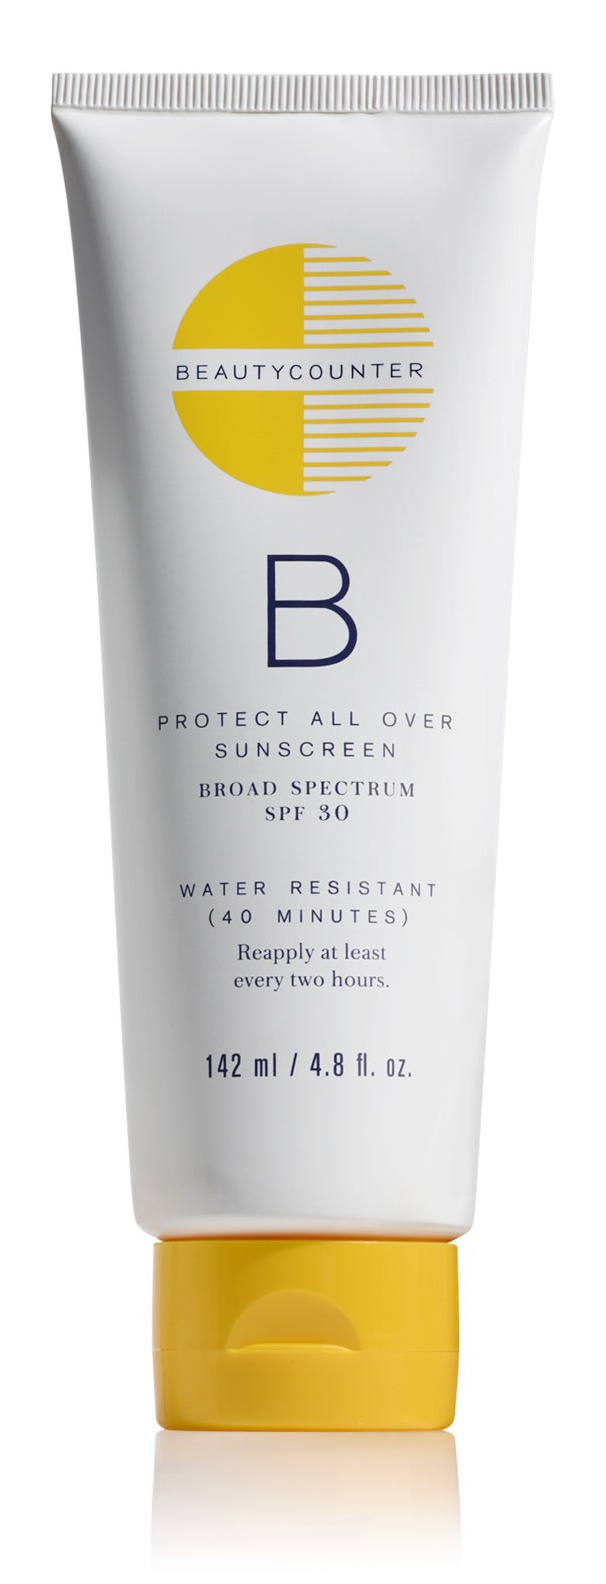 Beauty Counter Protect All Over Sunscreen Spf 30